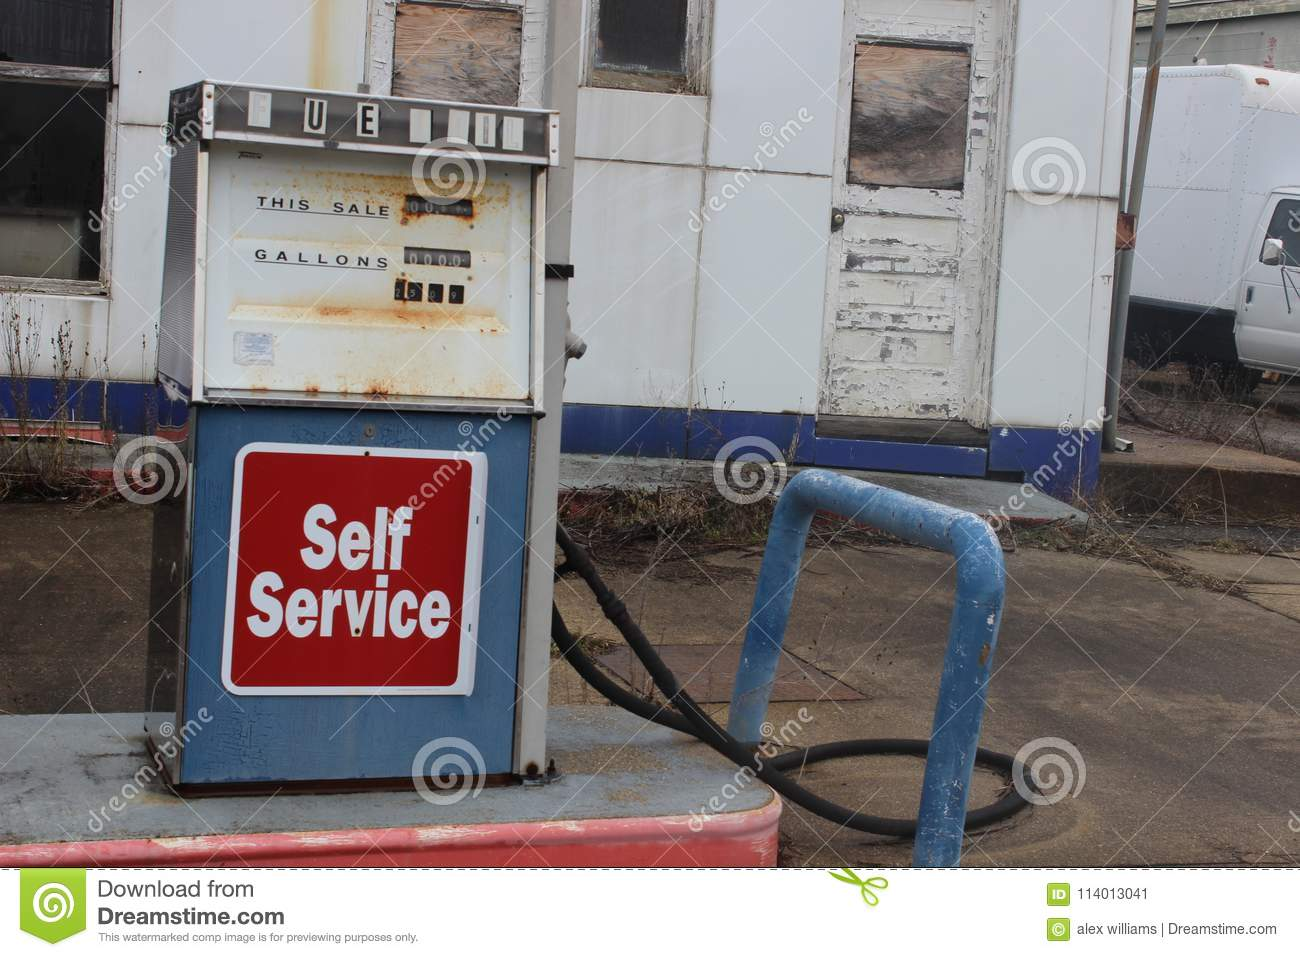 Abandoned Gas Station With Old Rusty Pumps Stock Image Image Of Repair Culture 114013041